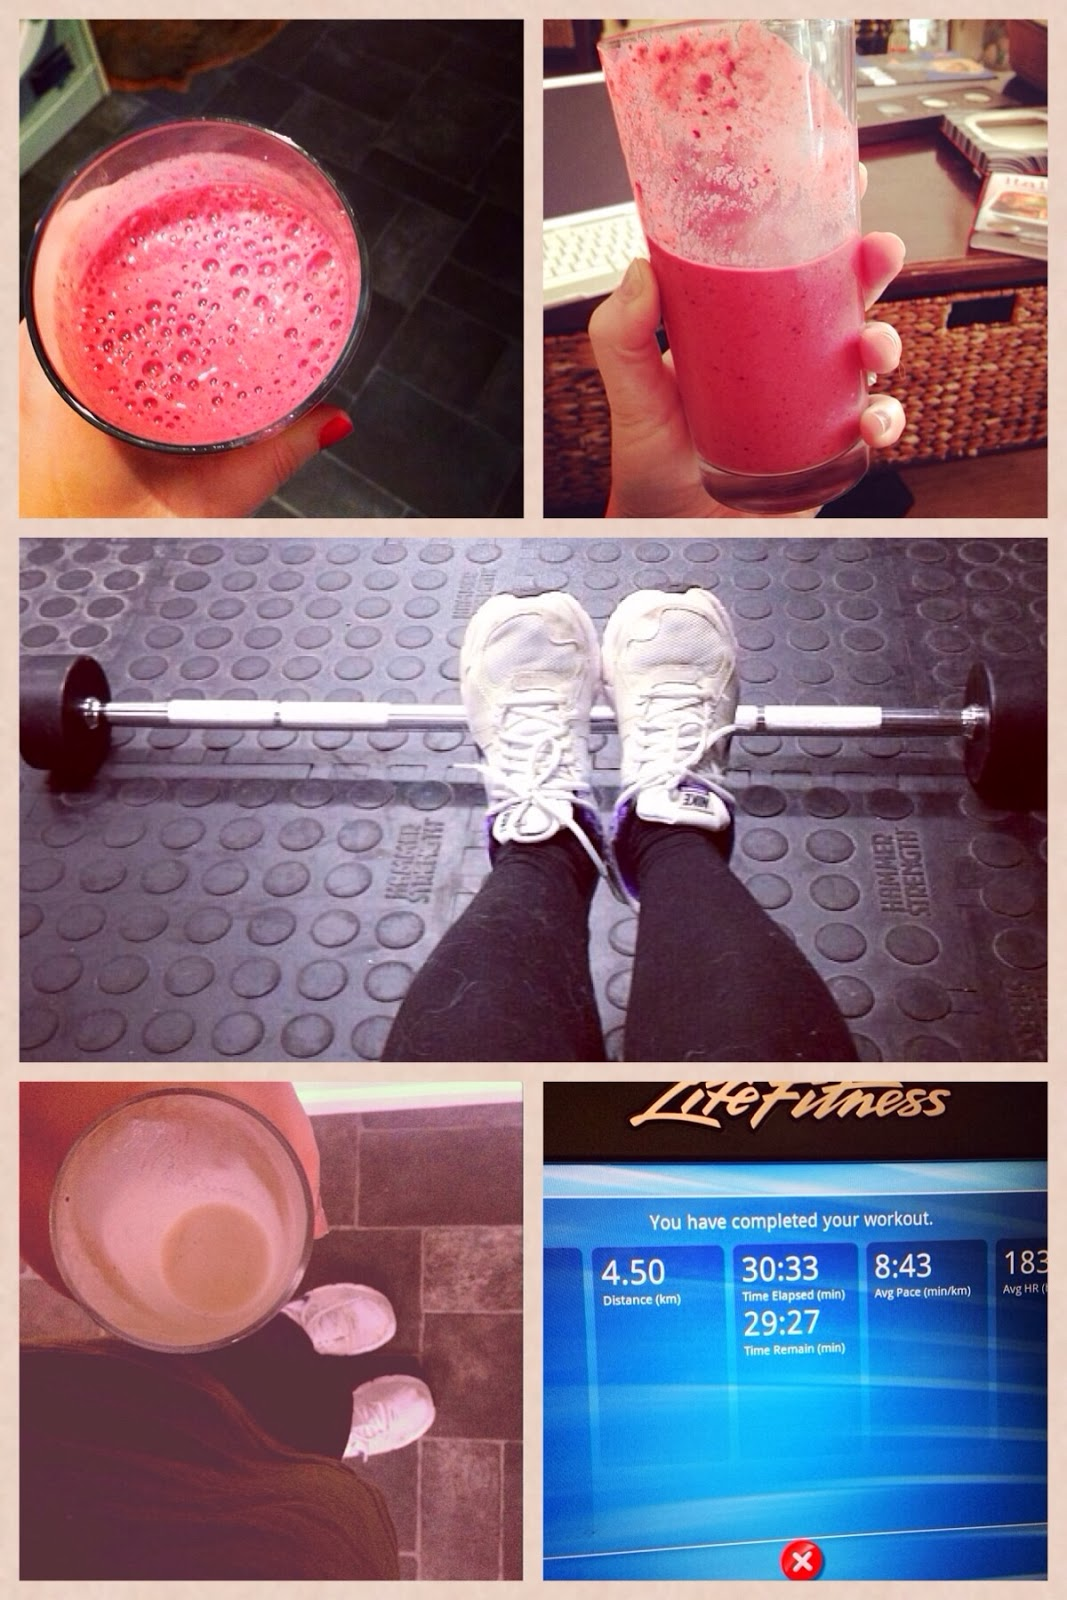 Homemade Smoothies and workout images